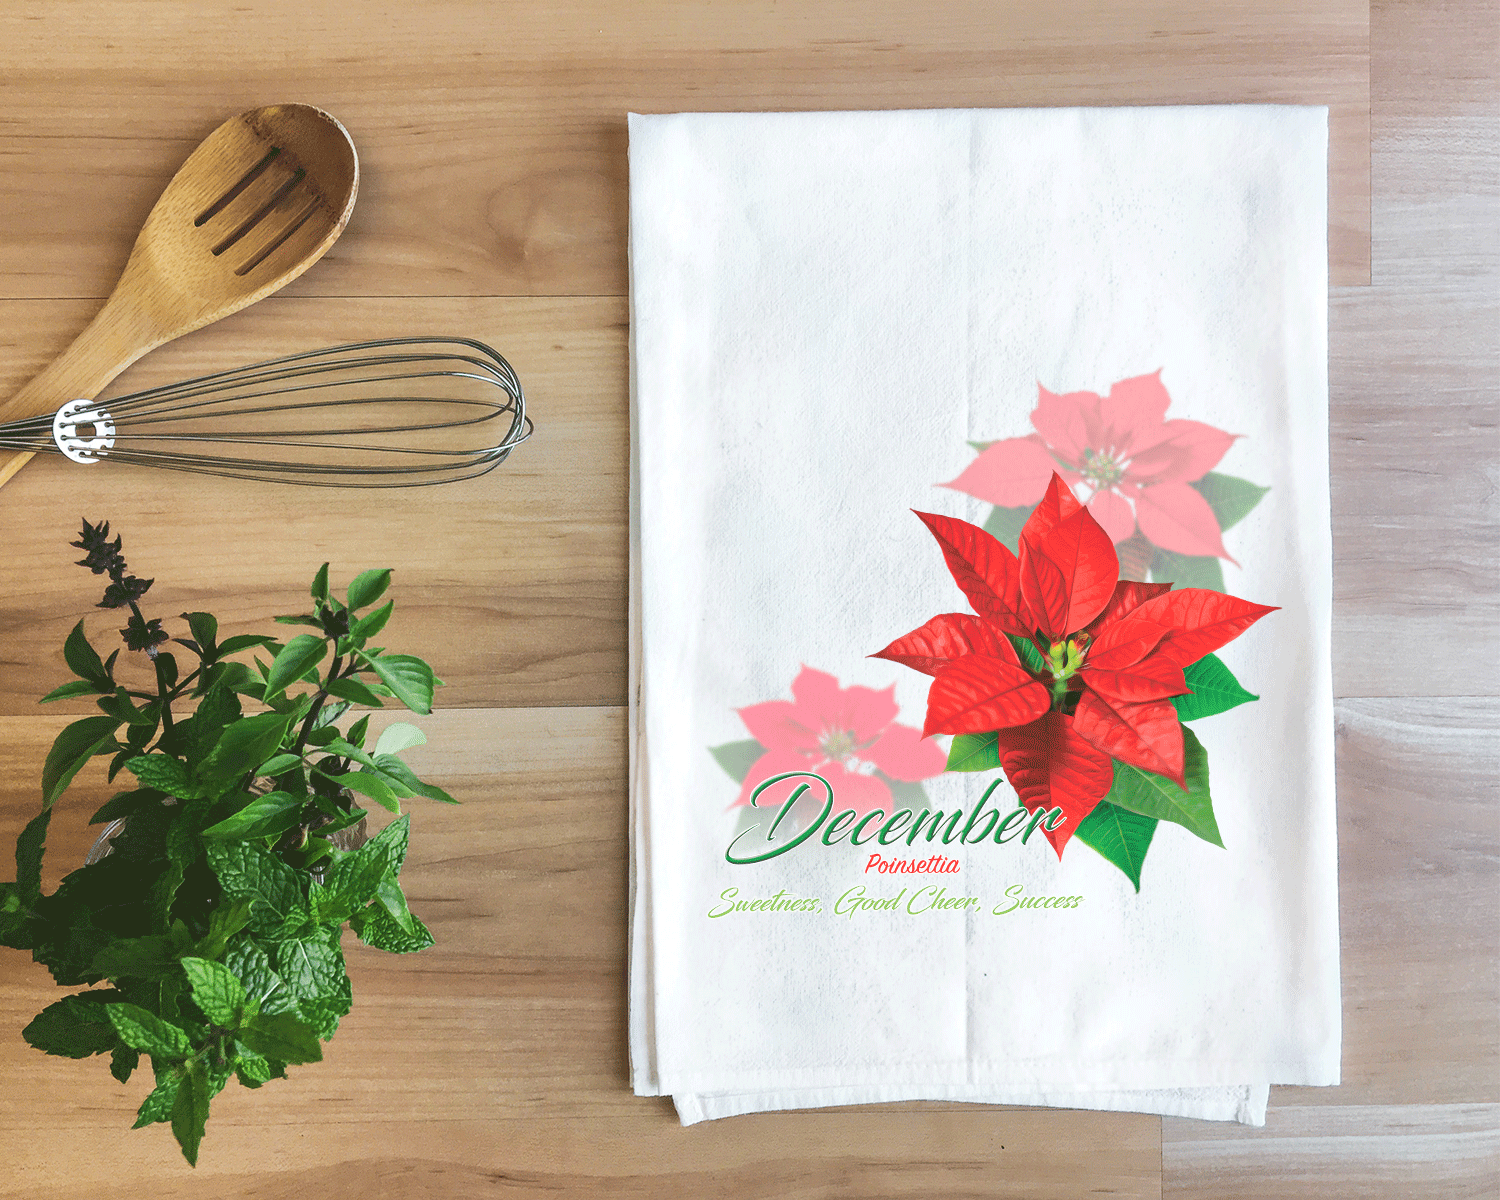 Poinsettia - December Flower Towel